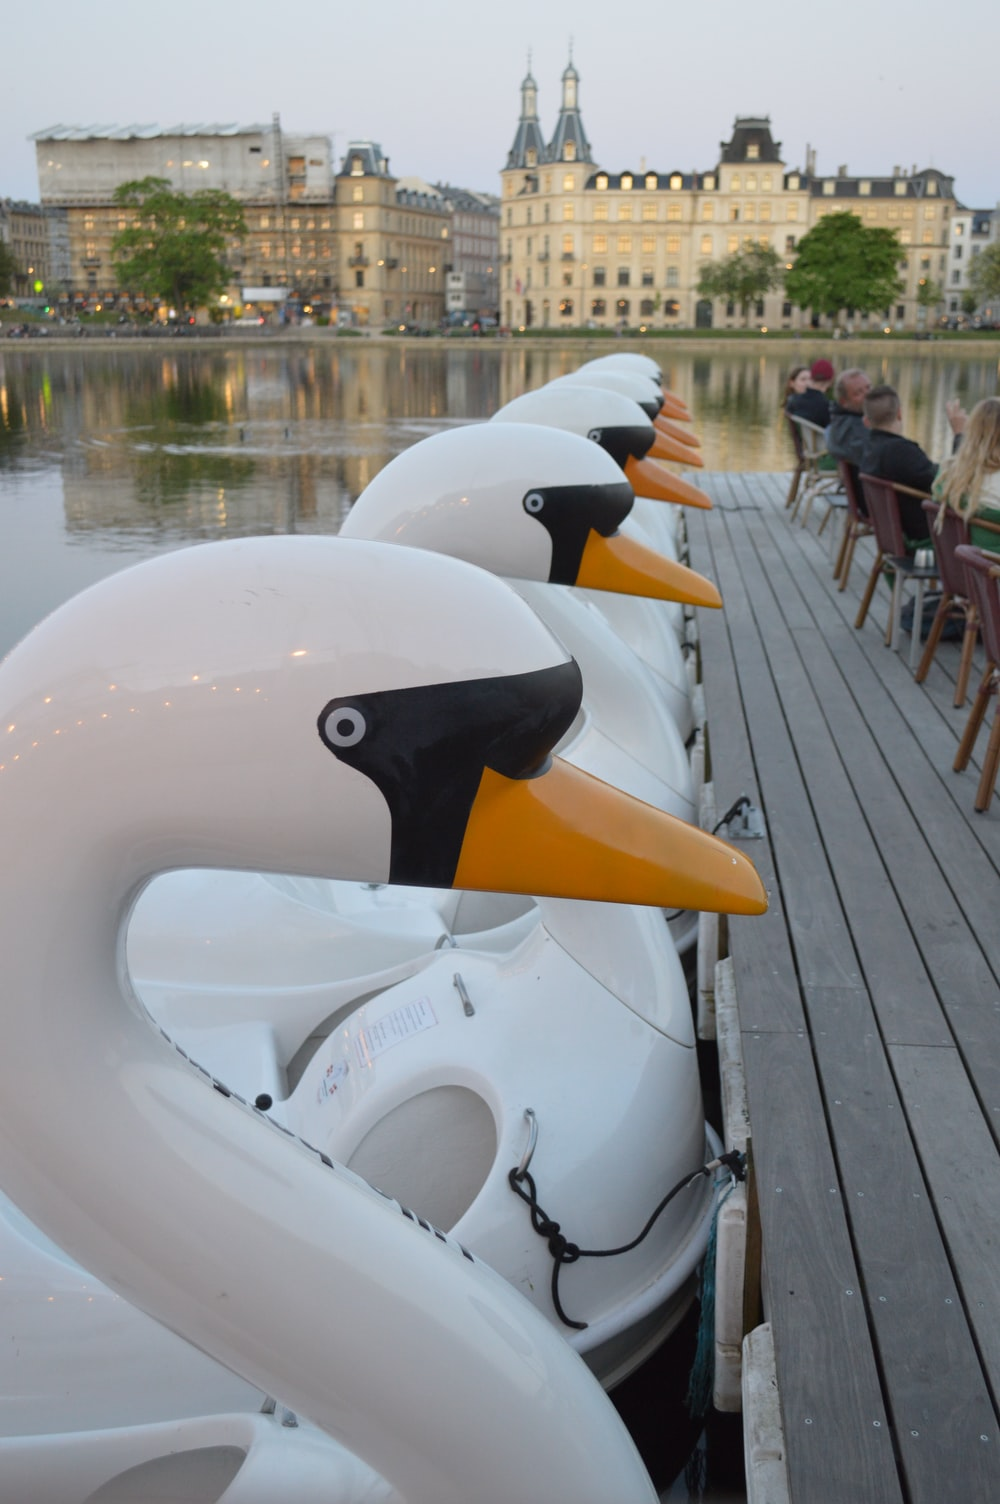 white and black duck inflatable float on dock during daytime